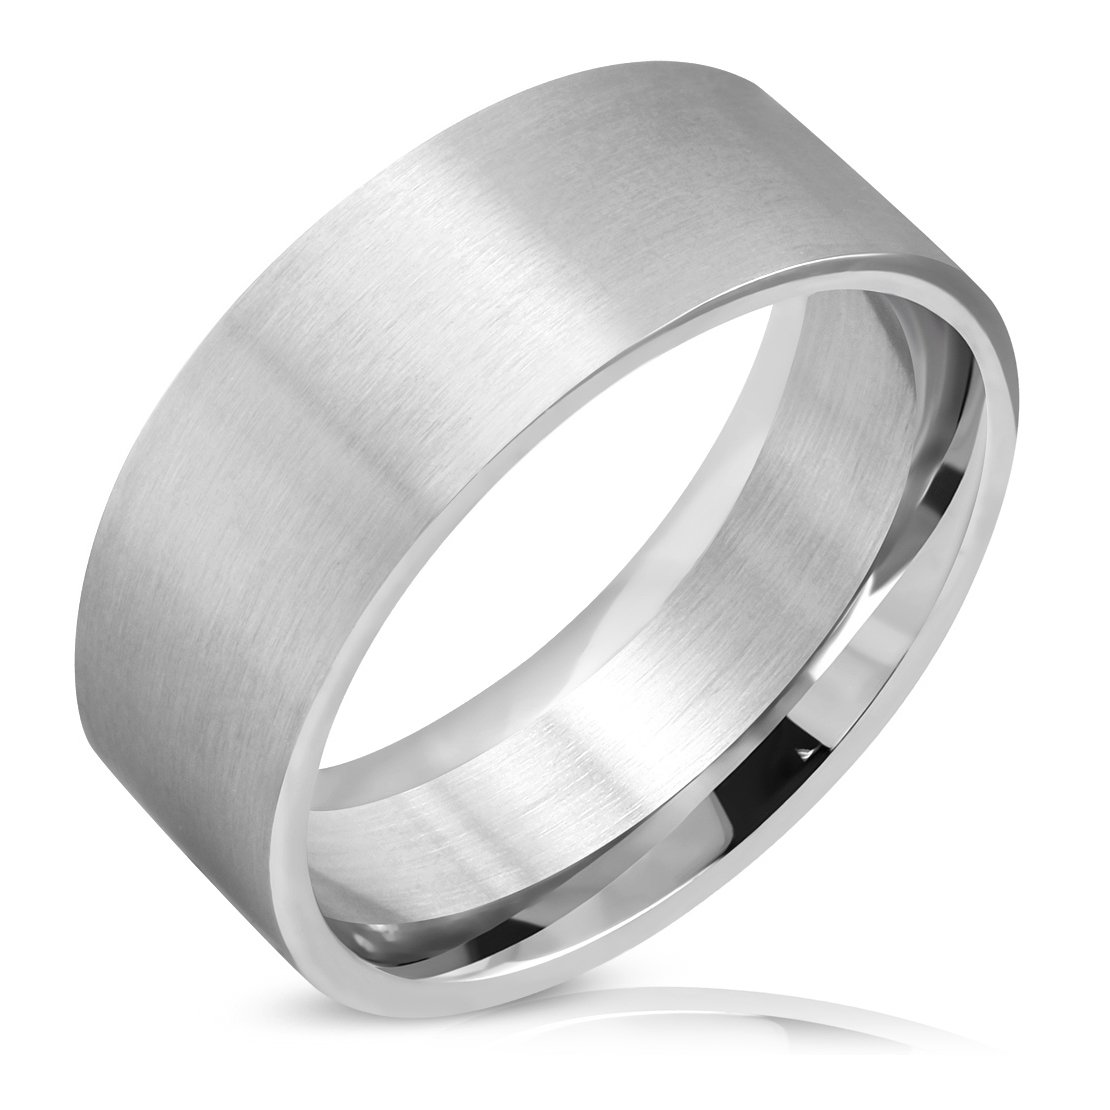 Stainless Steel Matte Finished Comfort Fit Flat Band Ring